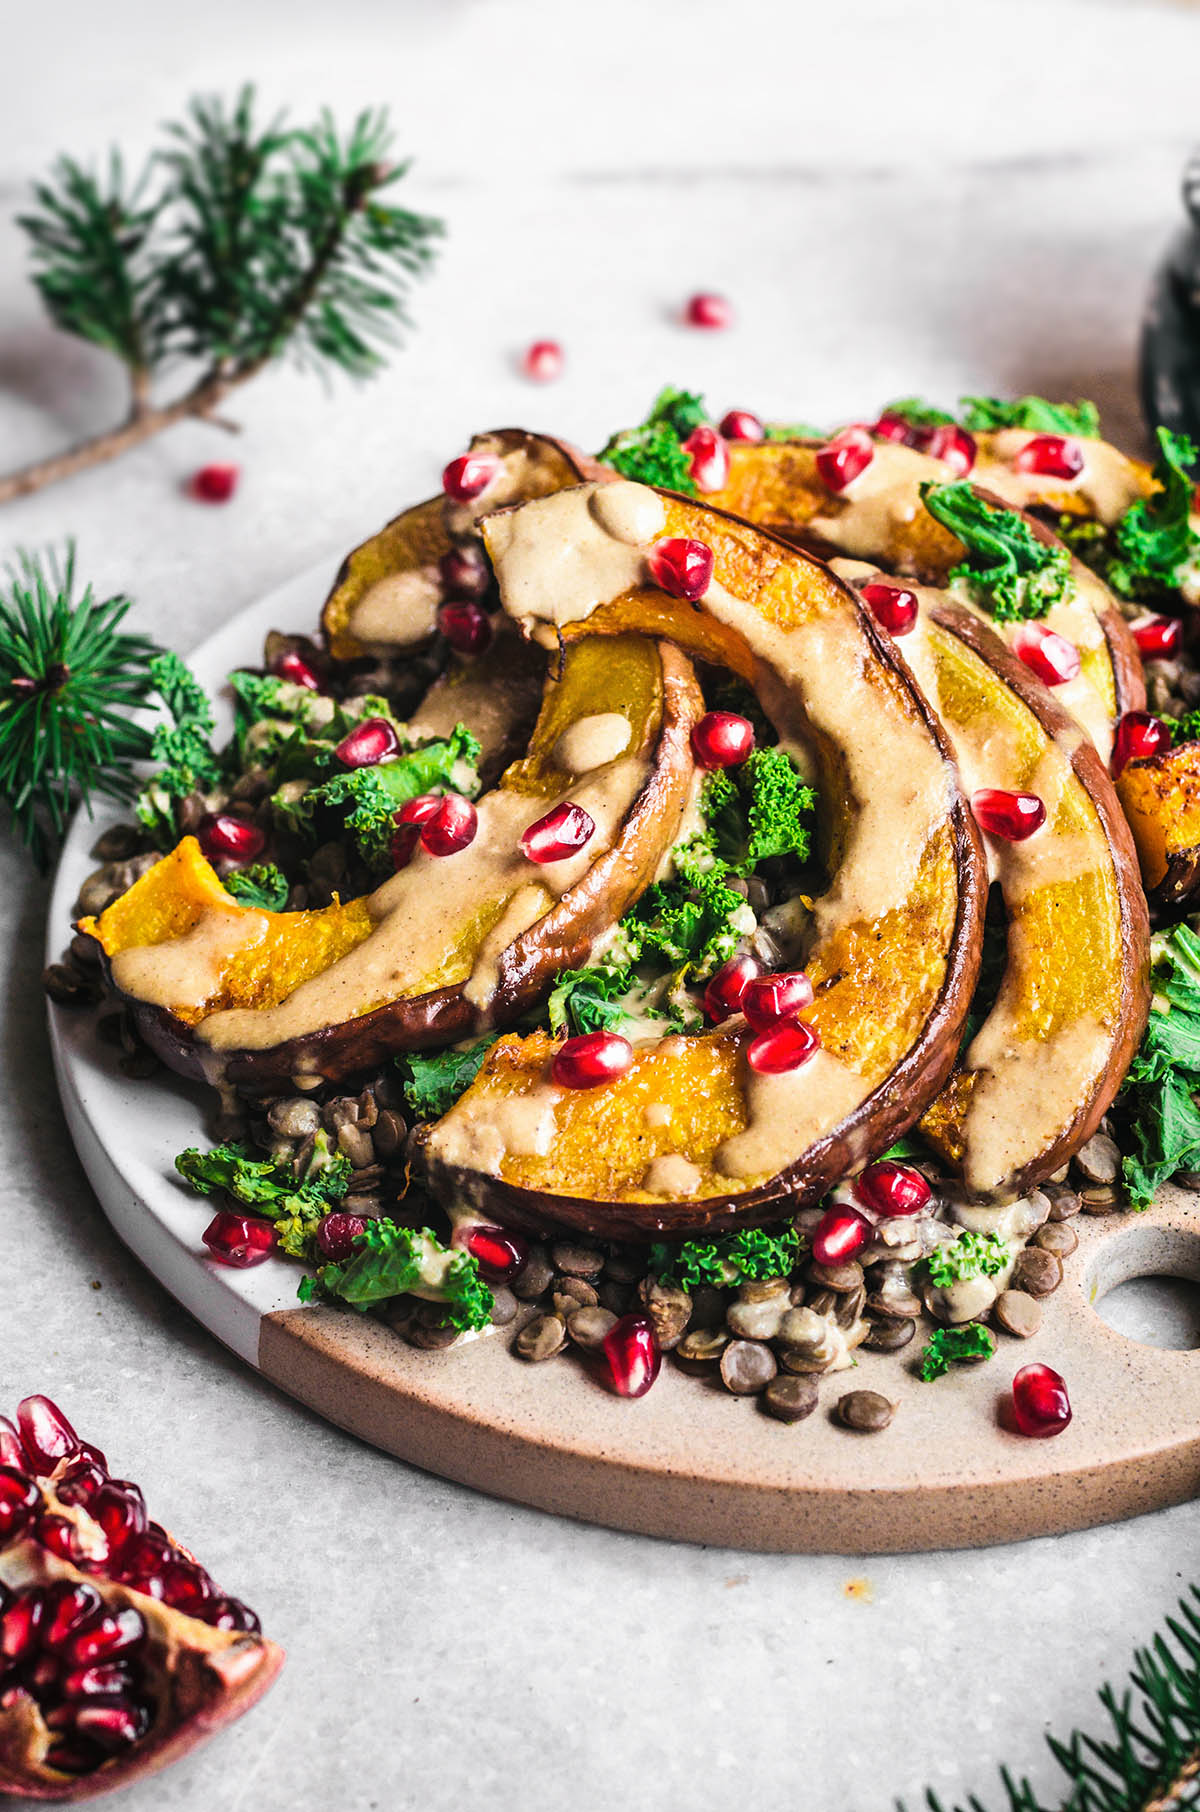 Roasted pumpkin salad with tahini dressing and pomegranate.